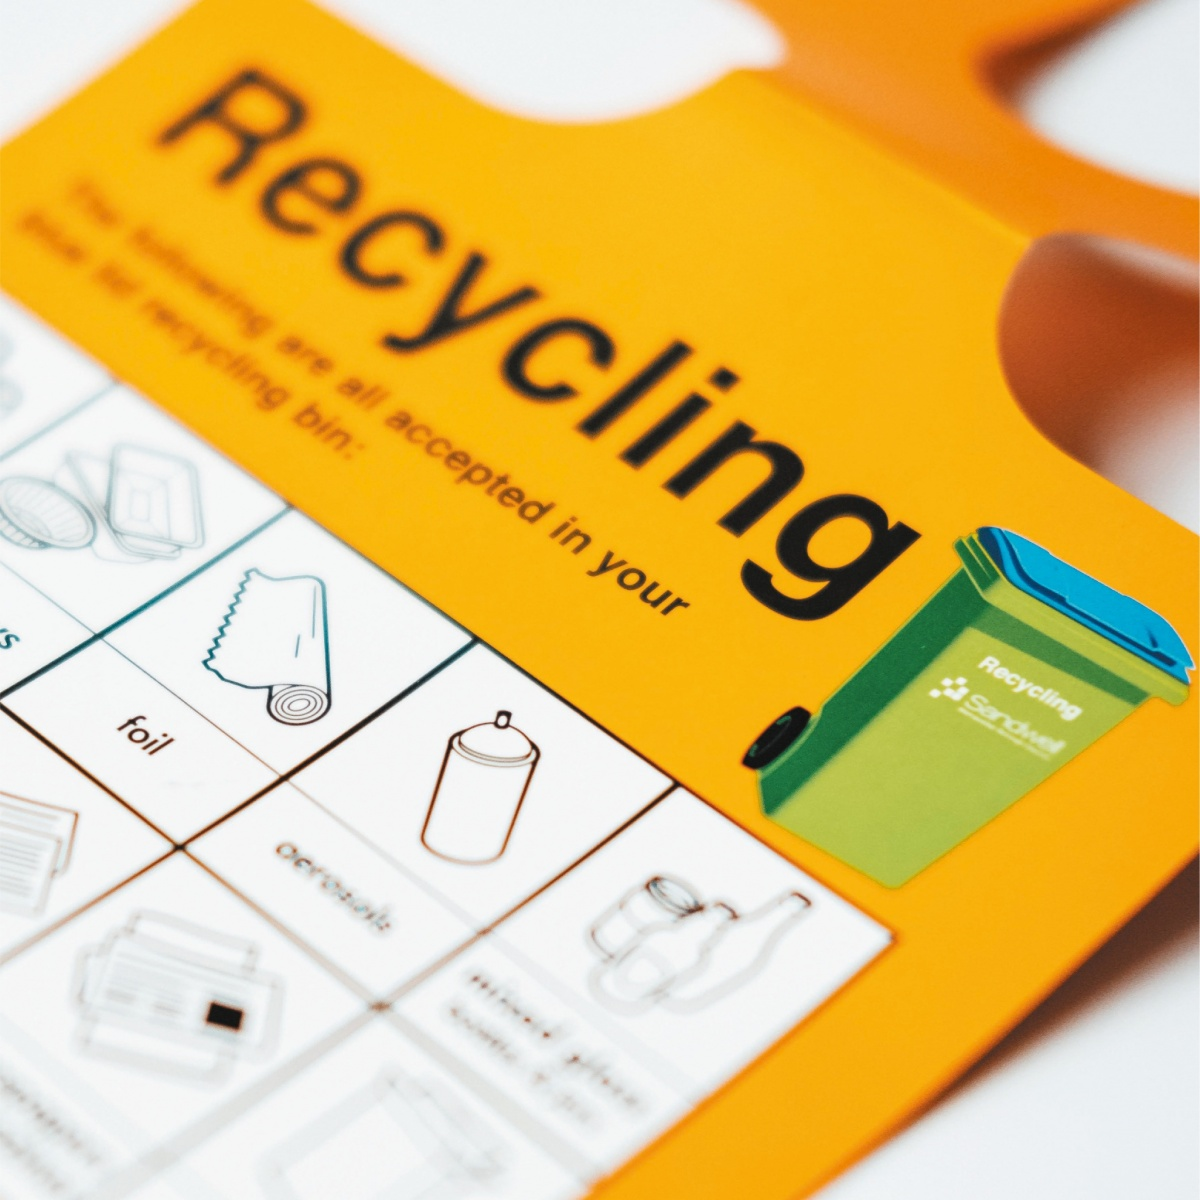 Recycling and Waste Control Signs